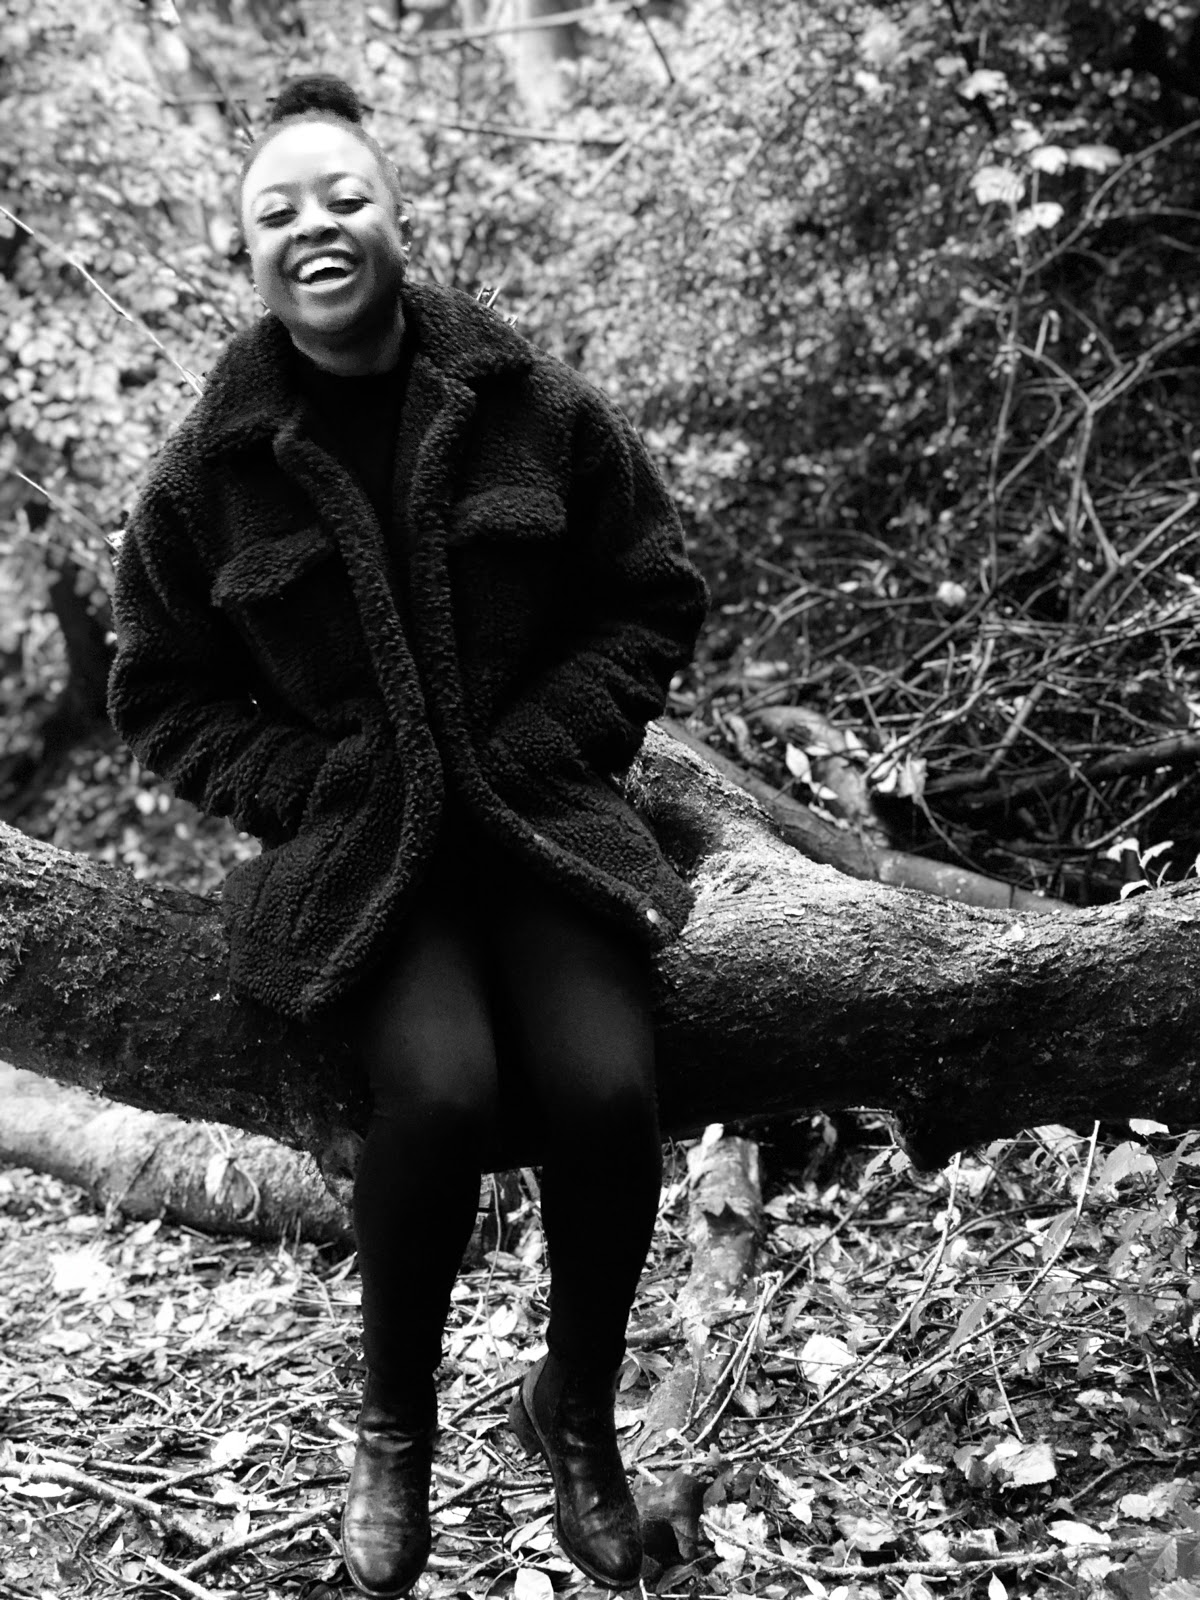 A candid shot of me laughing while sat on a wet tree branch in the middle of a forest